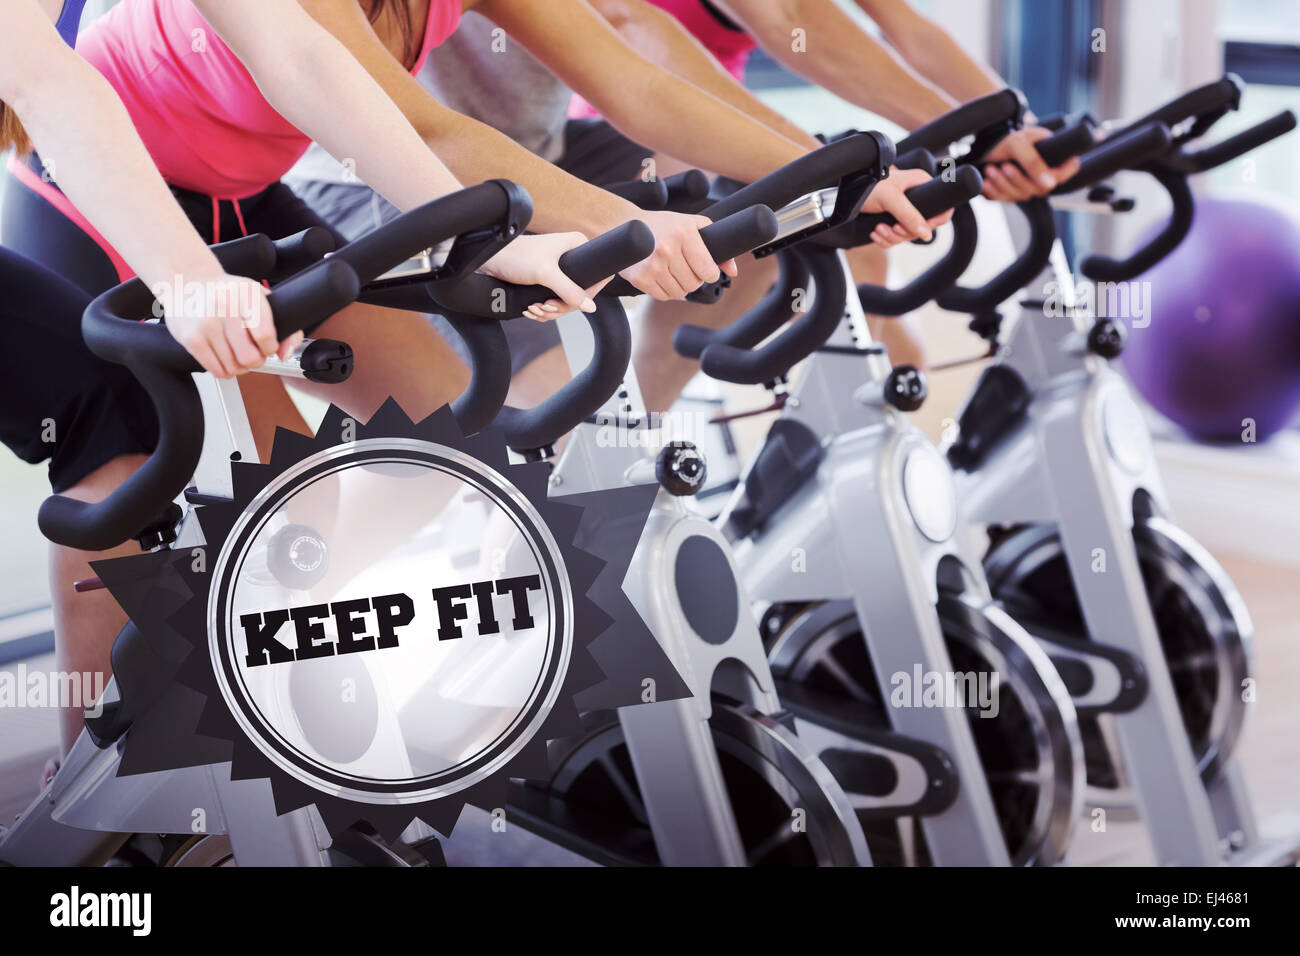 Keep fit against badge - Stock Image